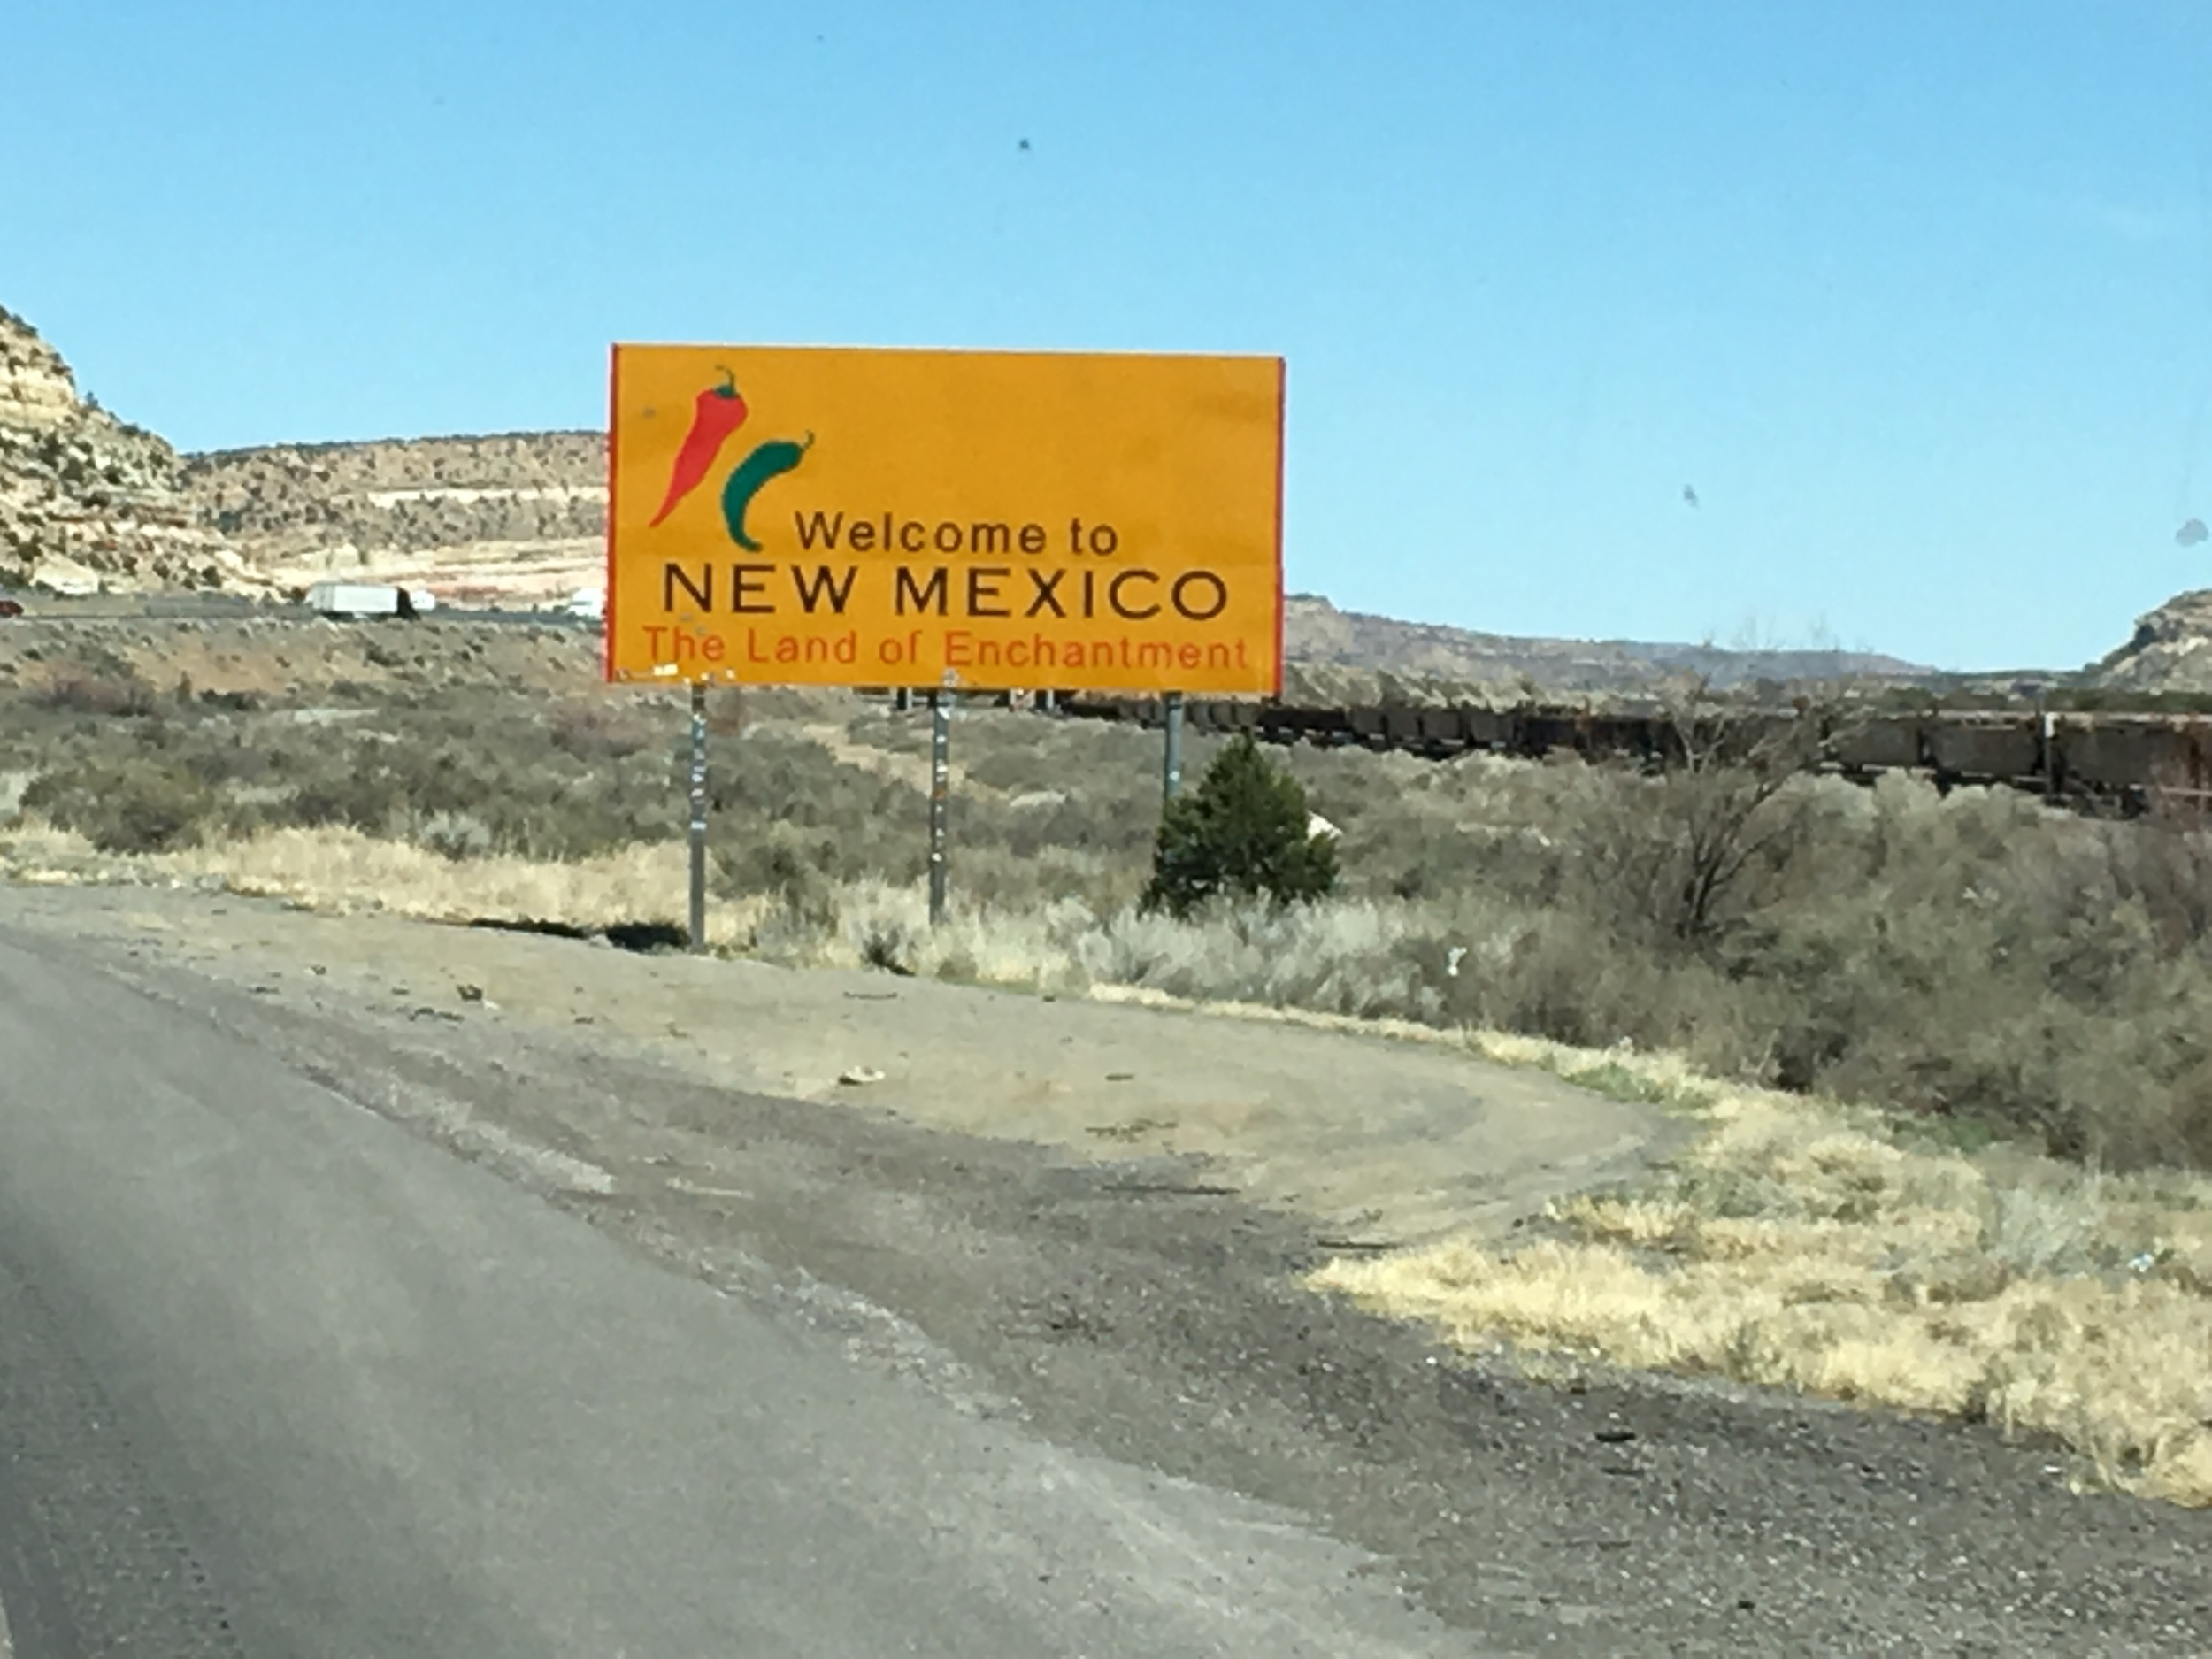 So long NM